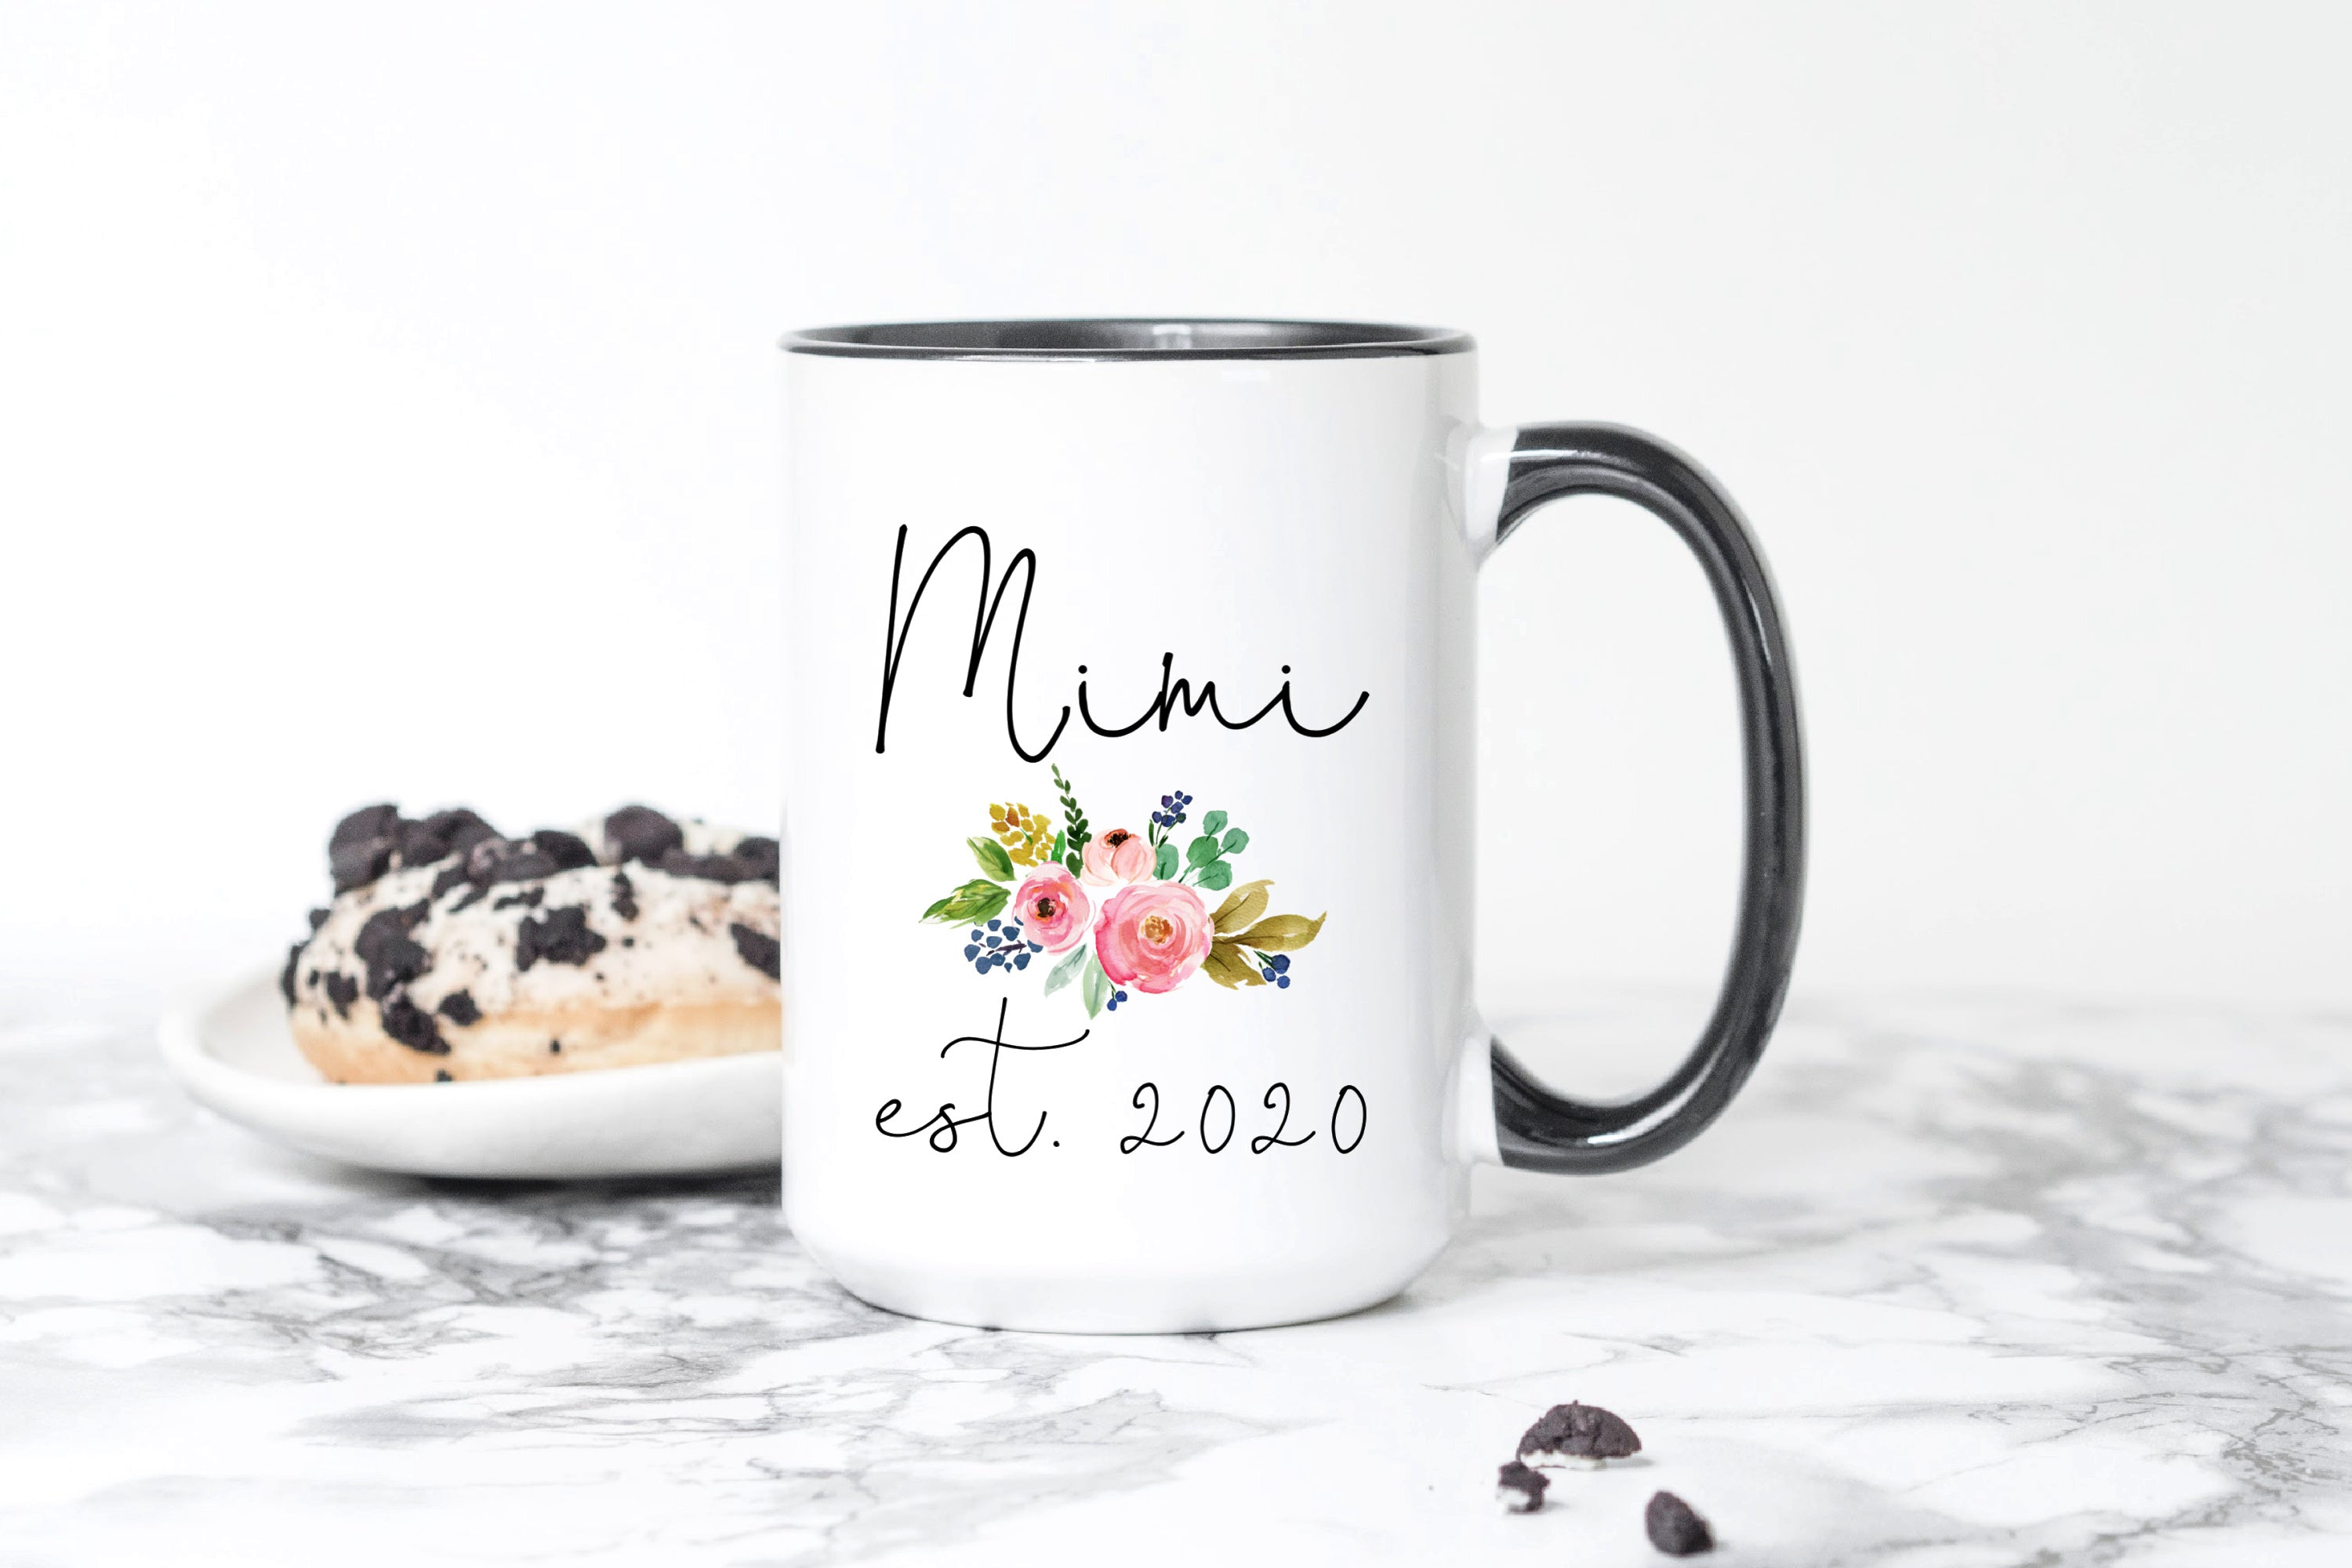 Printed Coffe Mug for Mimi's Gifts